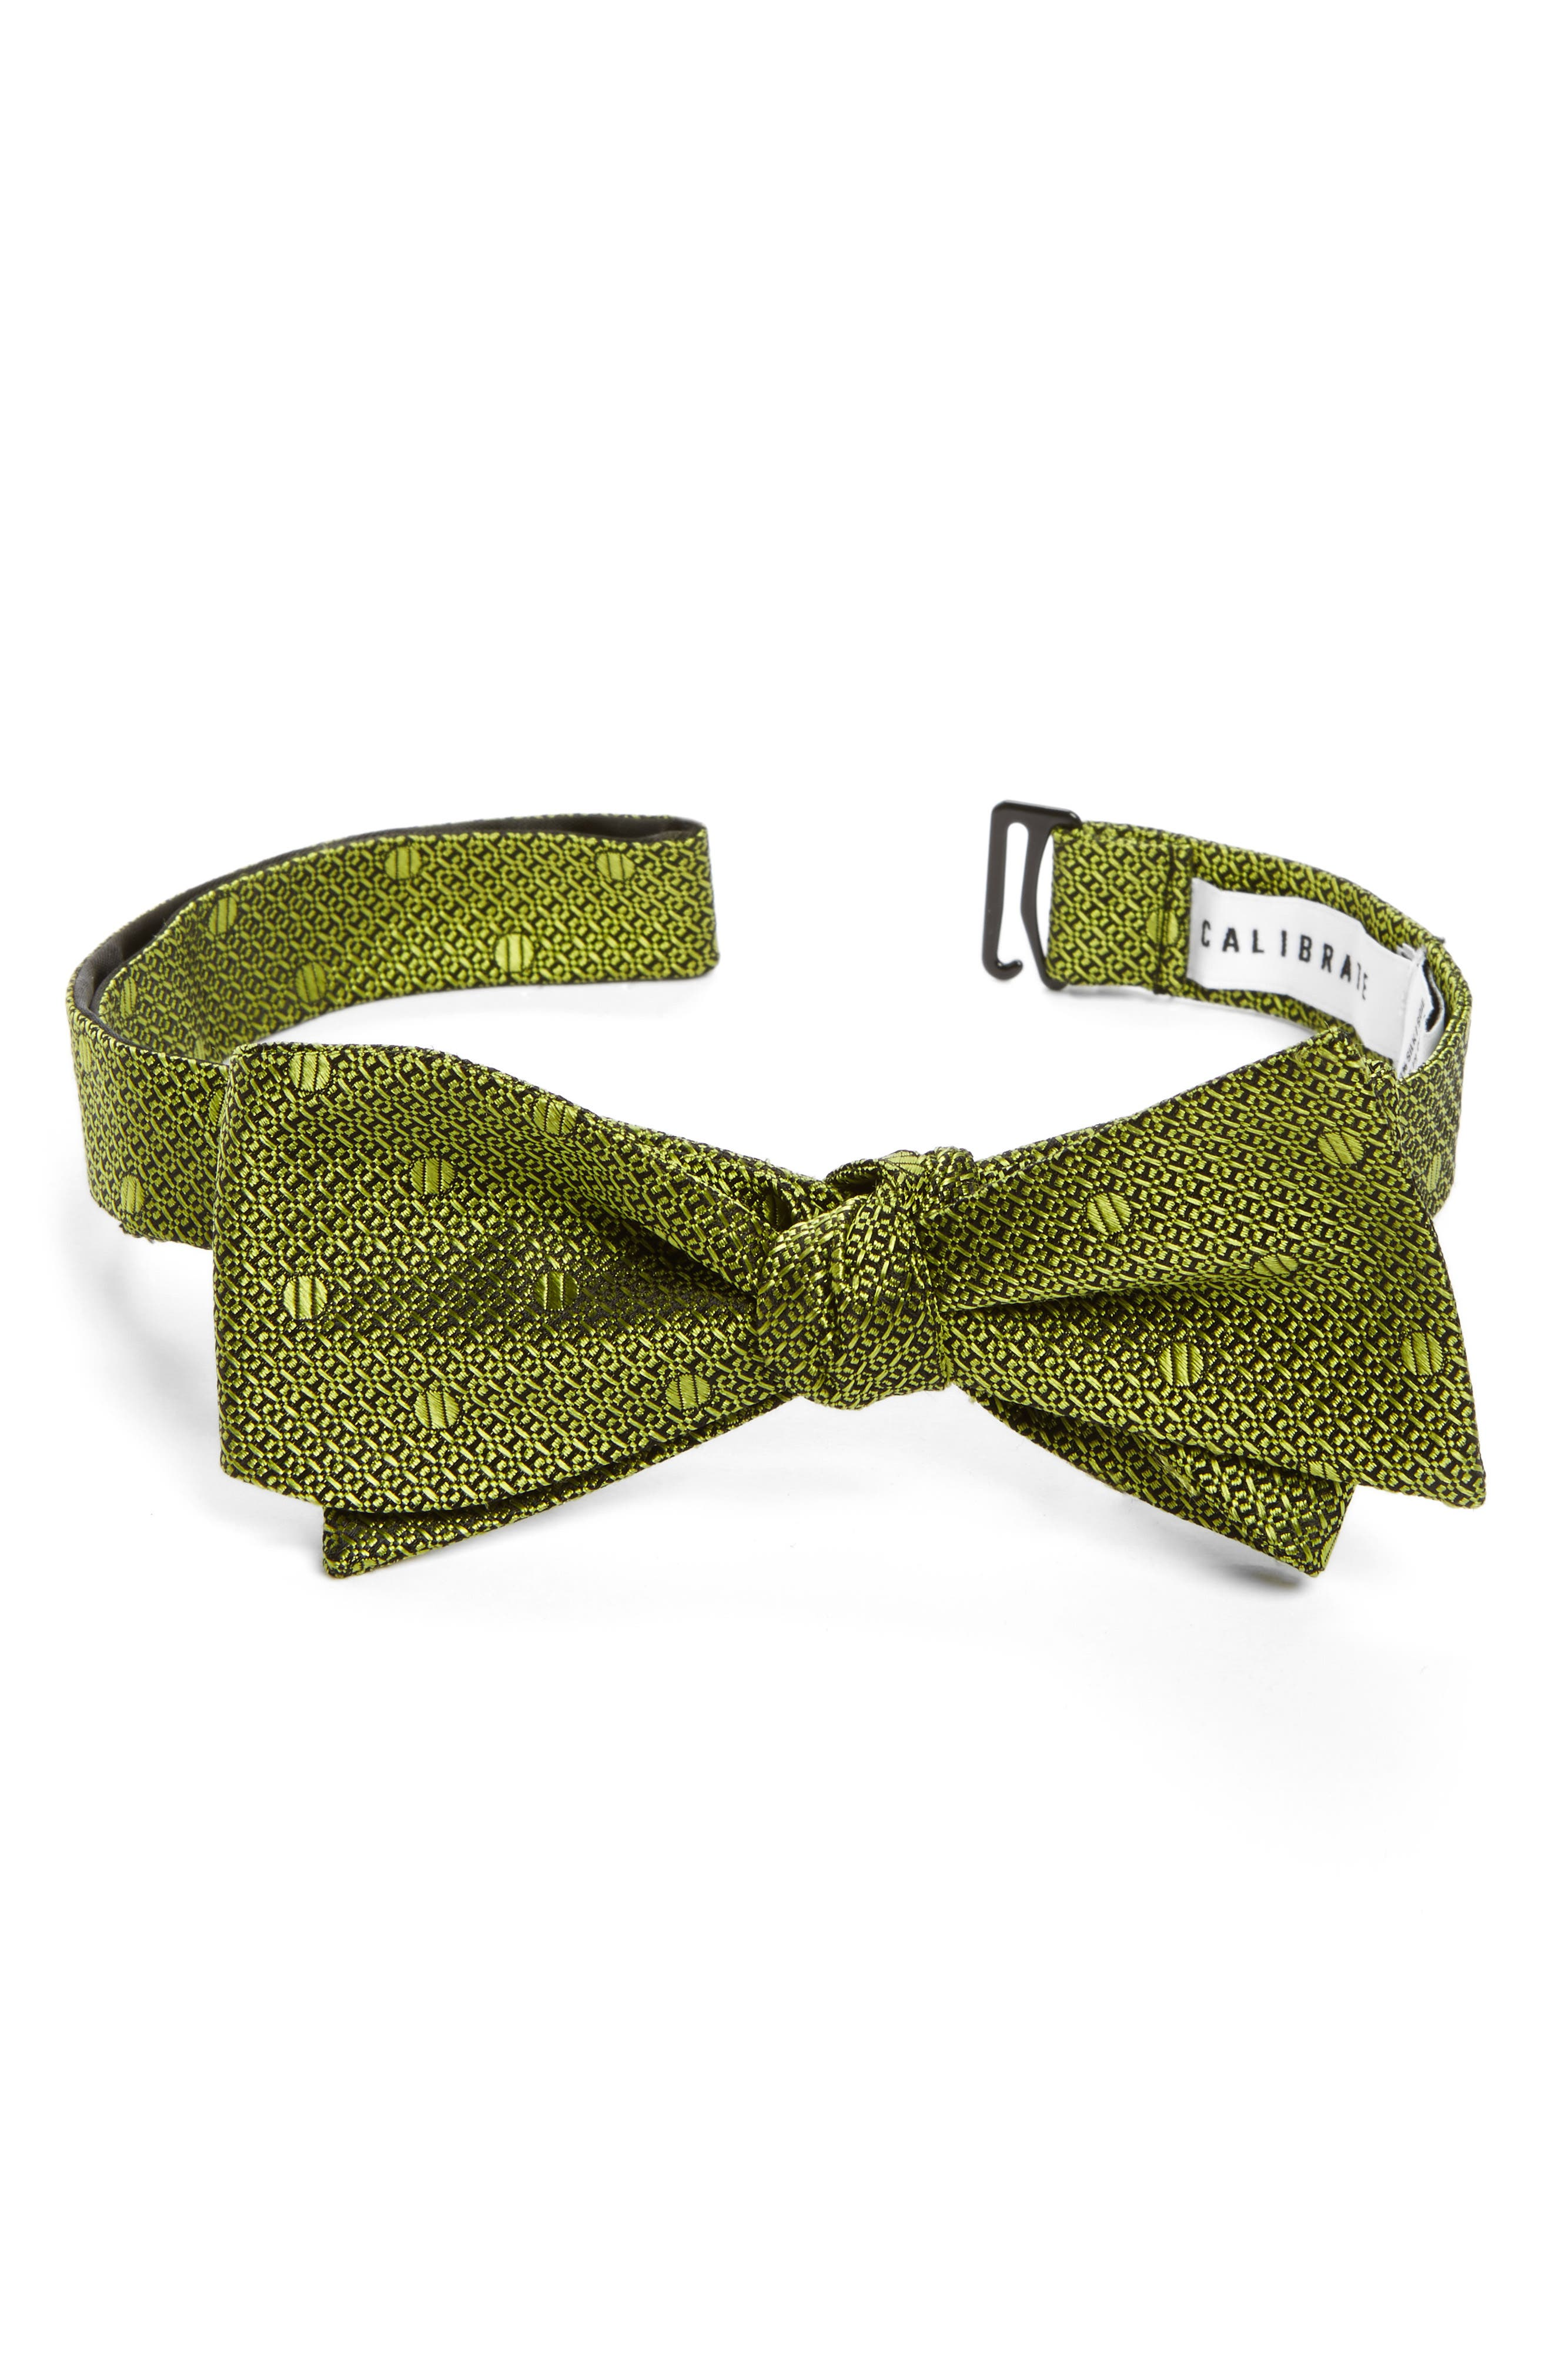 CALIBRATE Textured Dot Silk Bow Tie